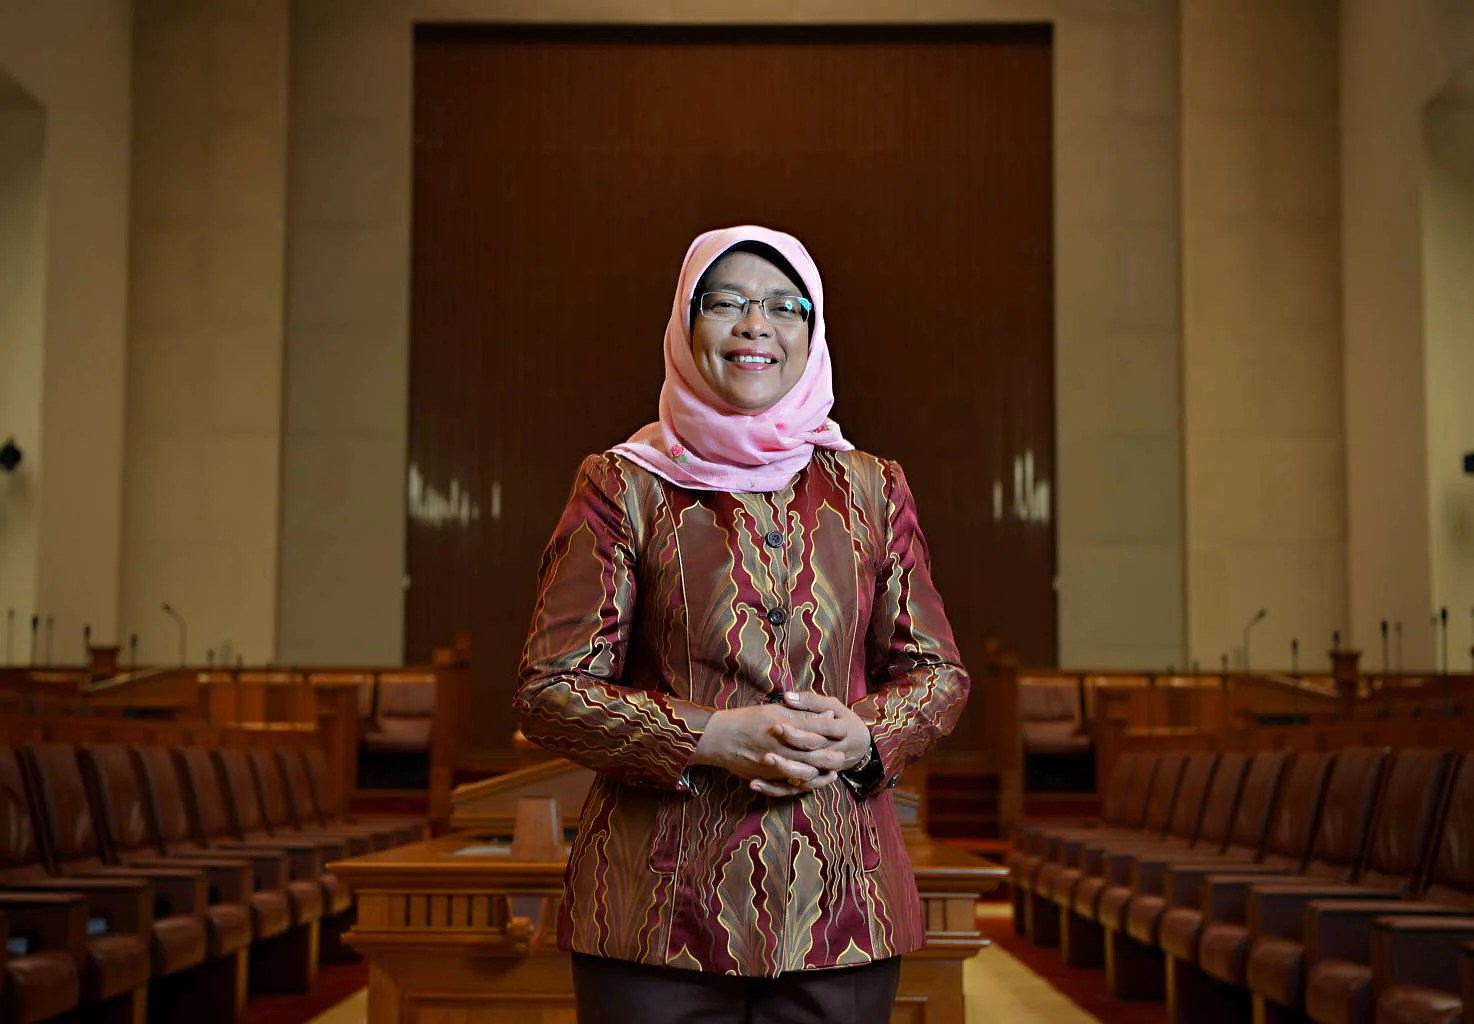 singapore budget 2017 substantive help for elderly needy says halimah news top stories the straits times